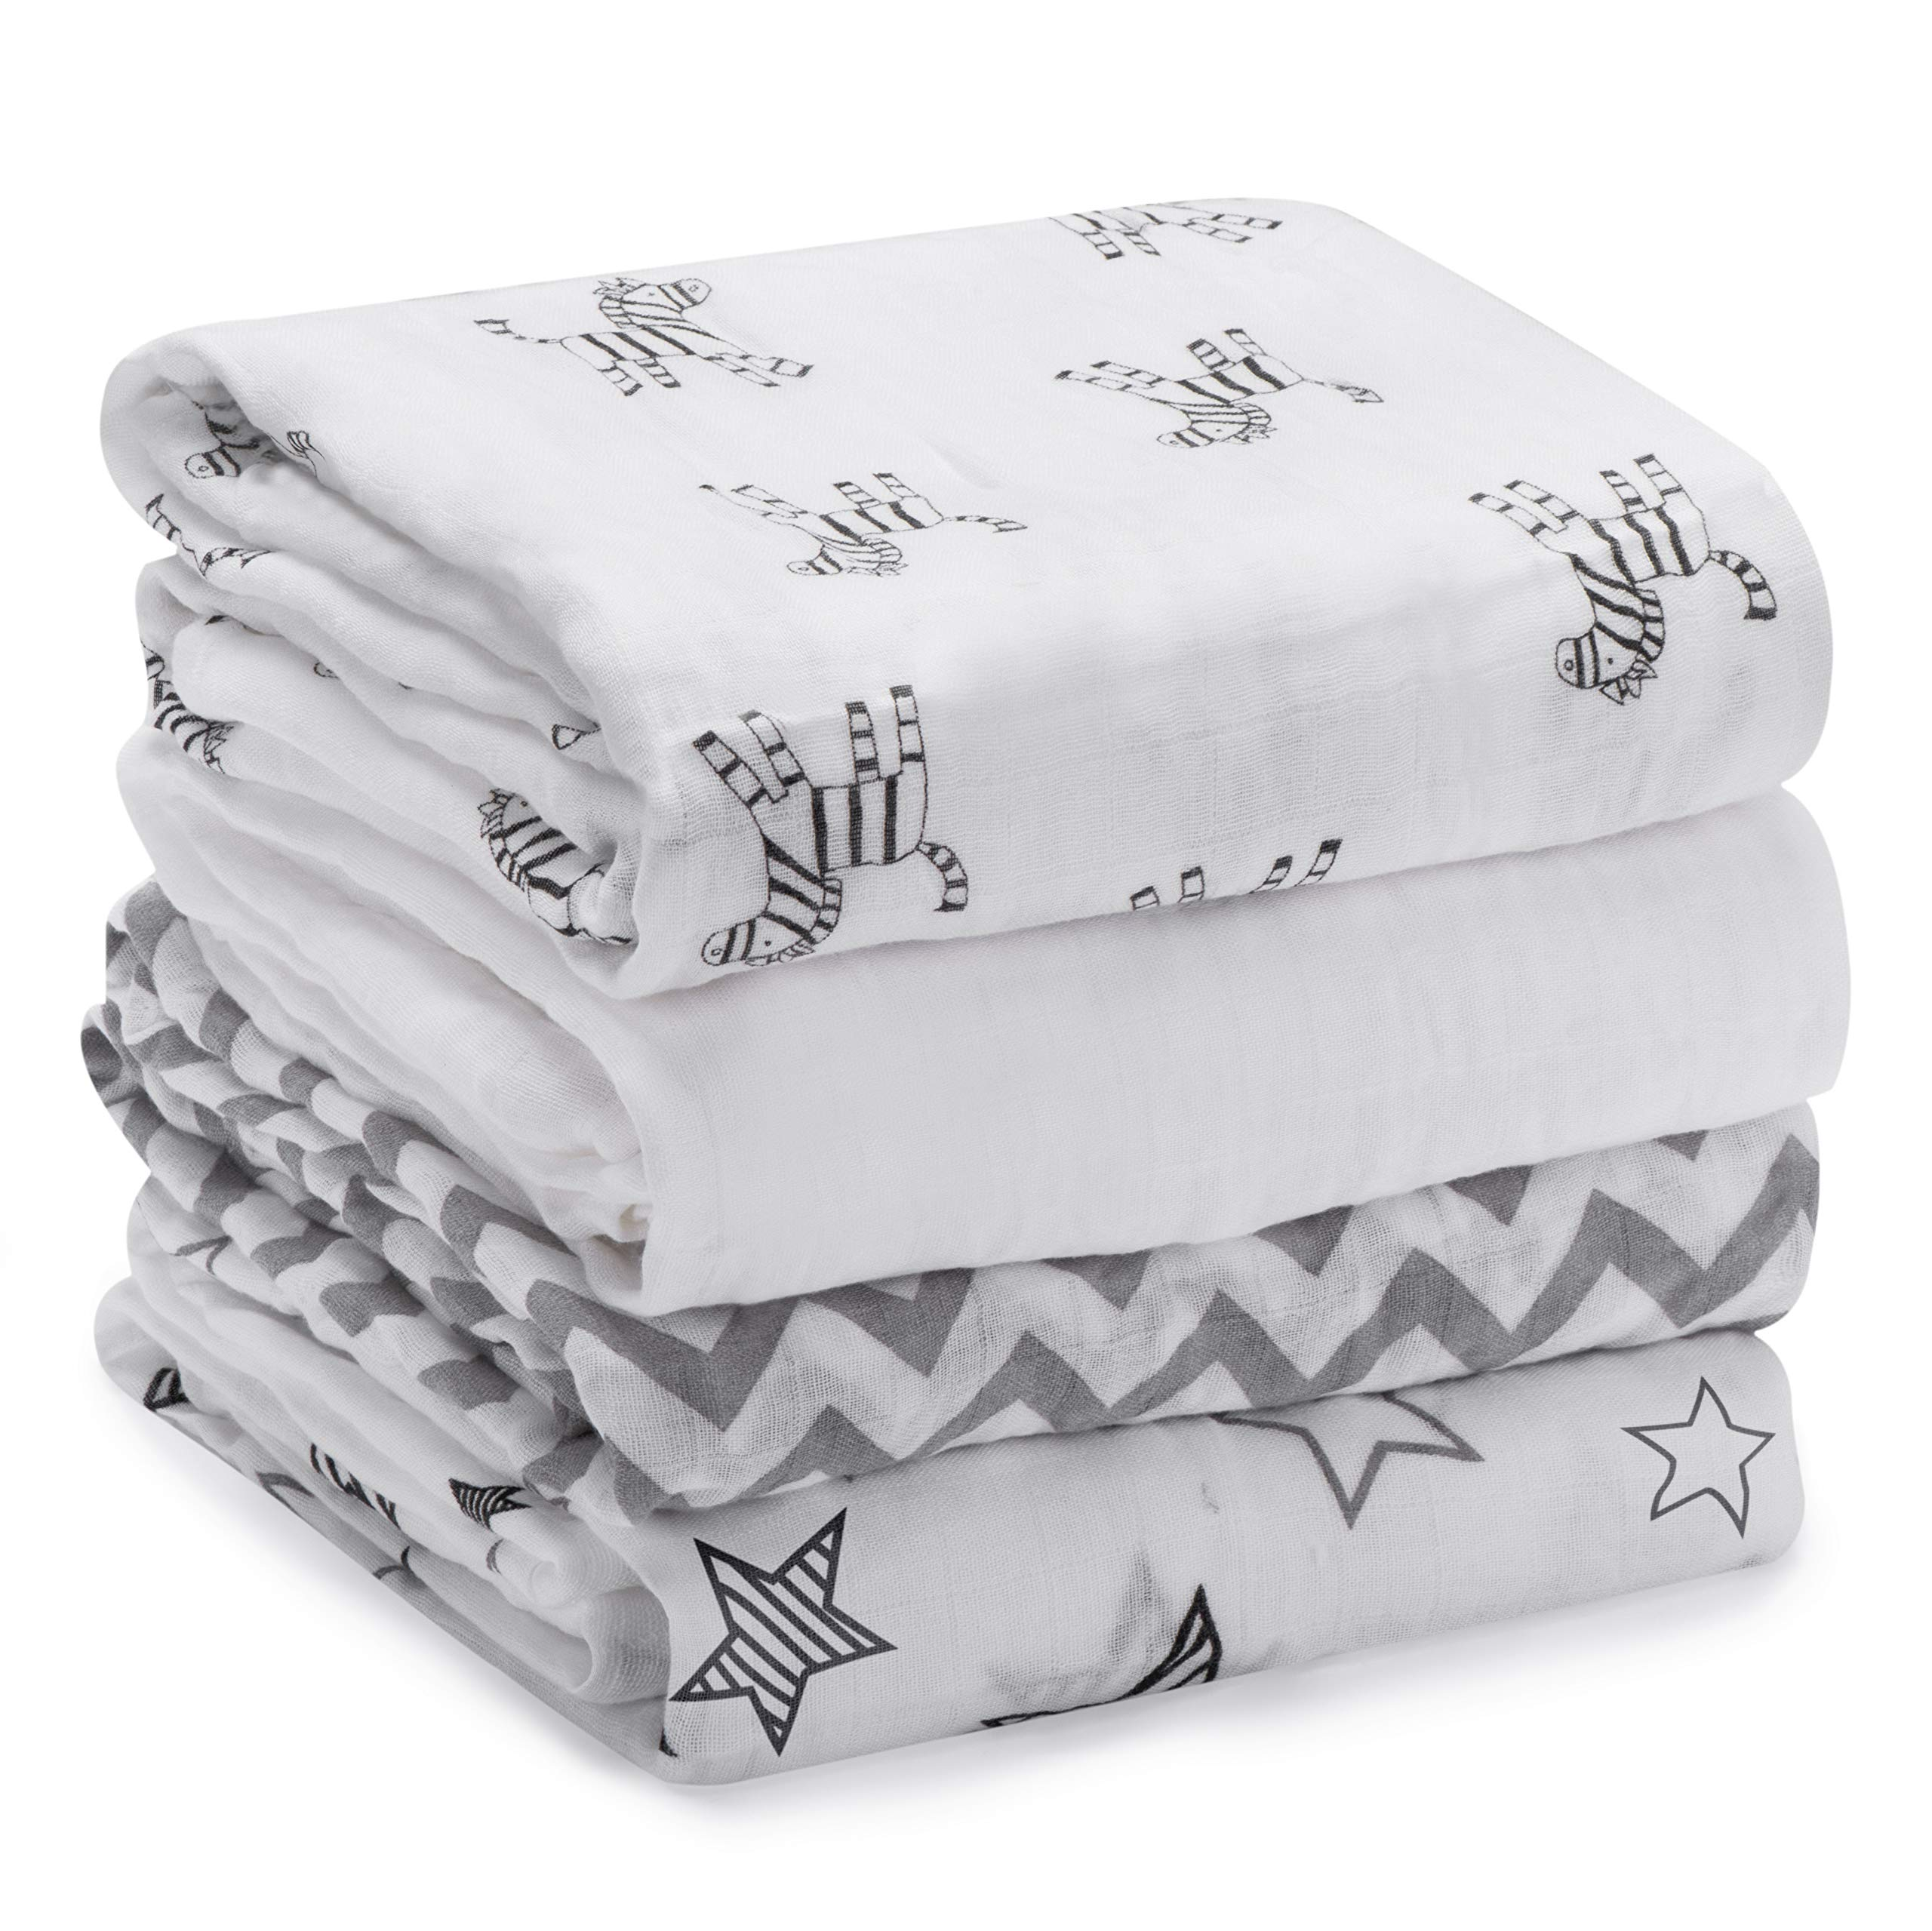 Momcozy Muslin Baby Swaddle Blankets, Large Neutral Receiving Blankets Wrap for Baby, 47 x 47 inch, 4 Pack, Soft Silky 30% Cotton + 70% Bamboo. Newborn to Toddler. (Zebras, Stars, Waves, Pure White) by Momcozy